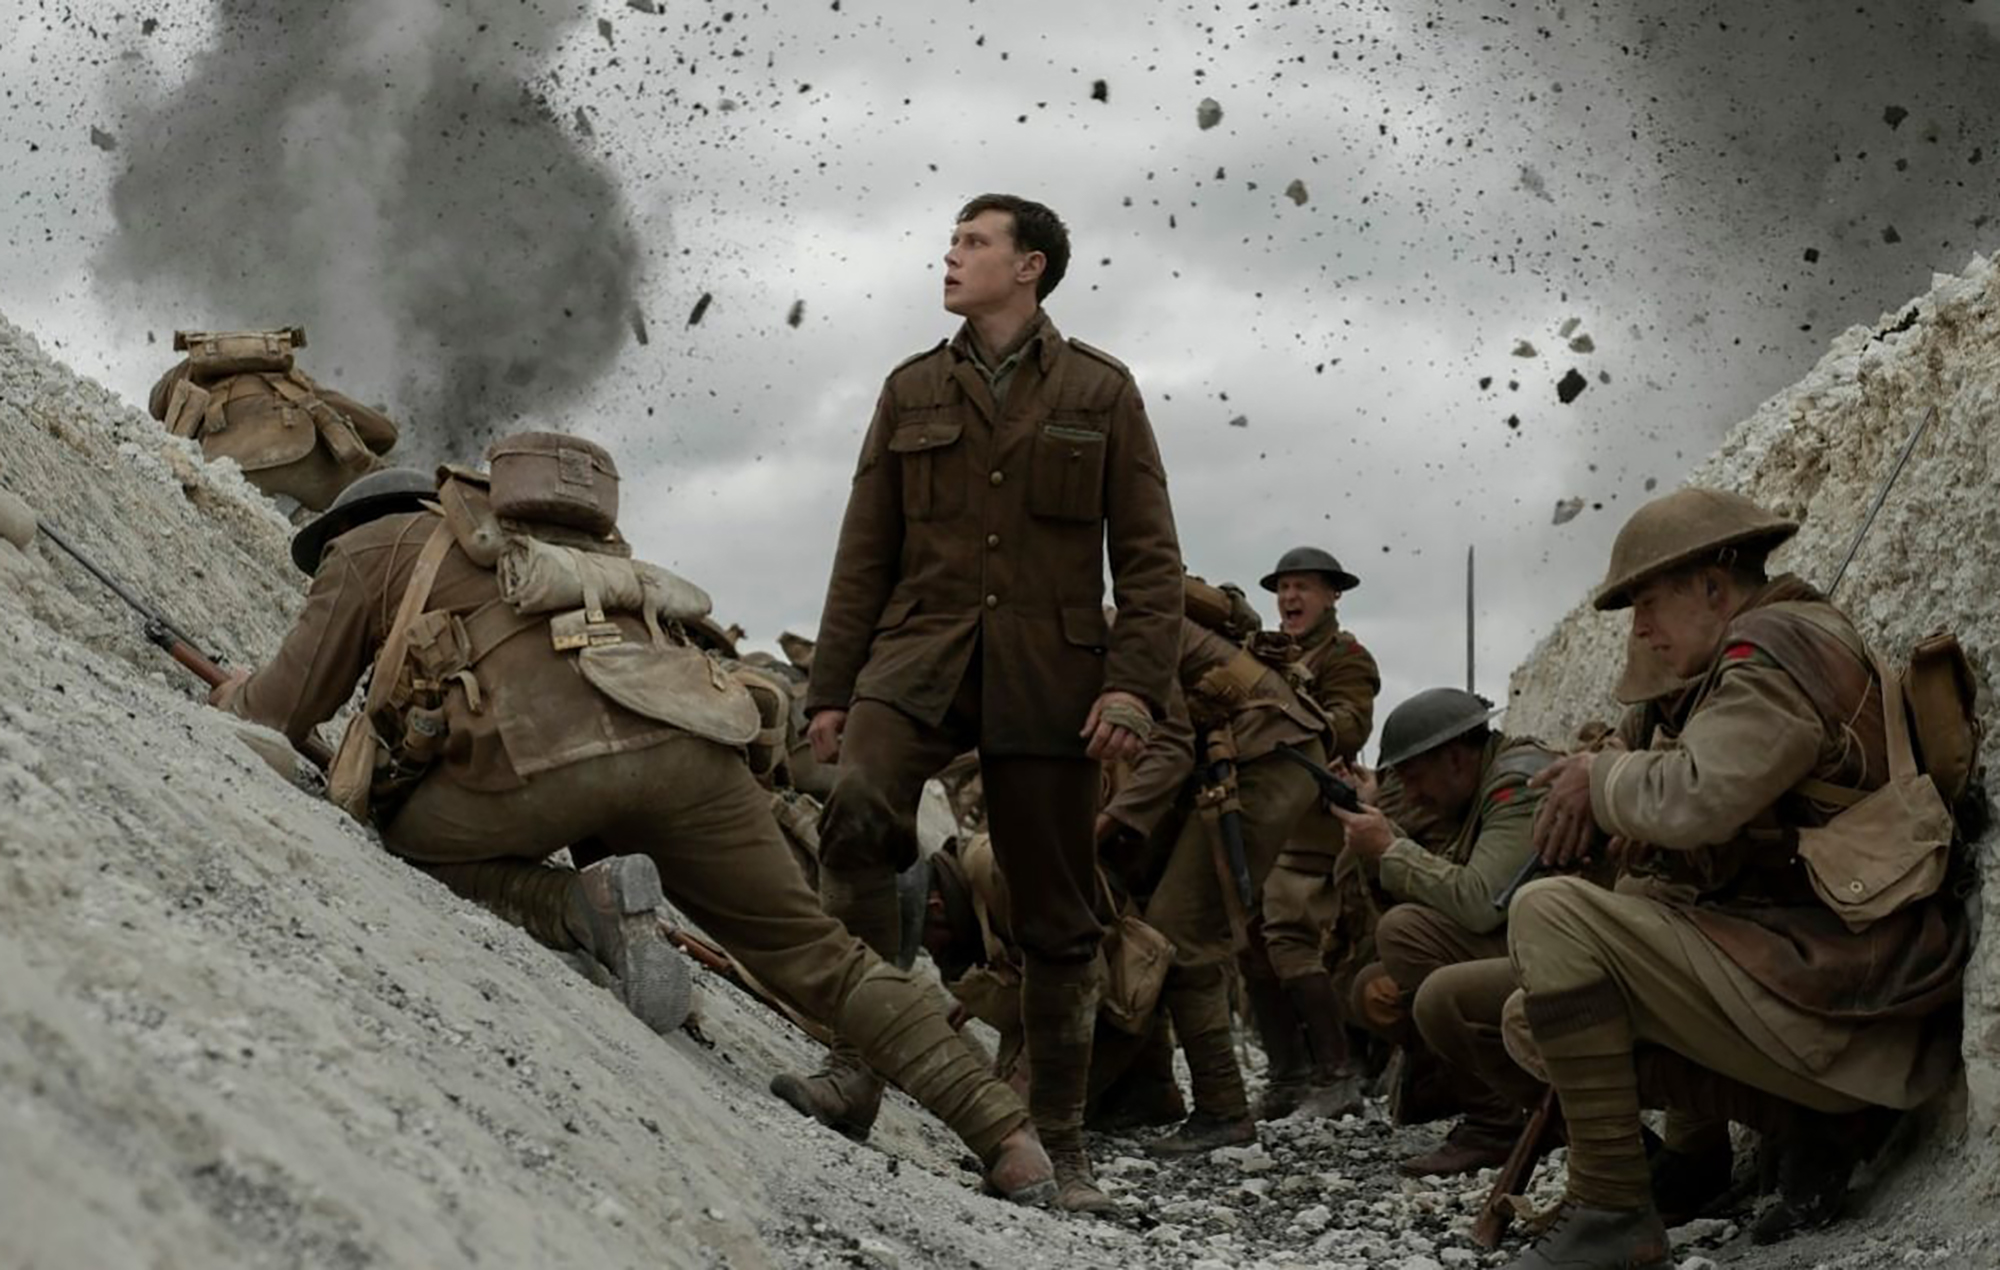 1917 will win the Oscar for Best Picture – but here's why it shouldn't